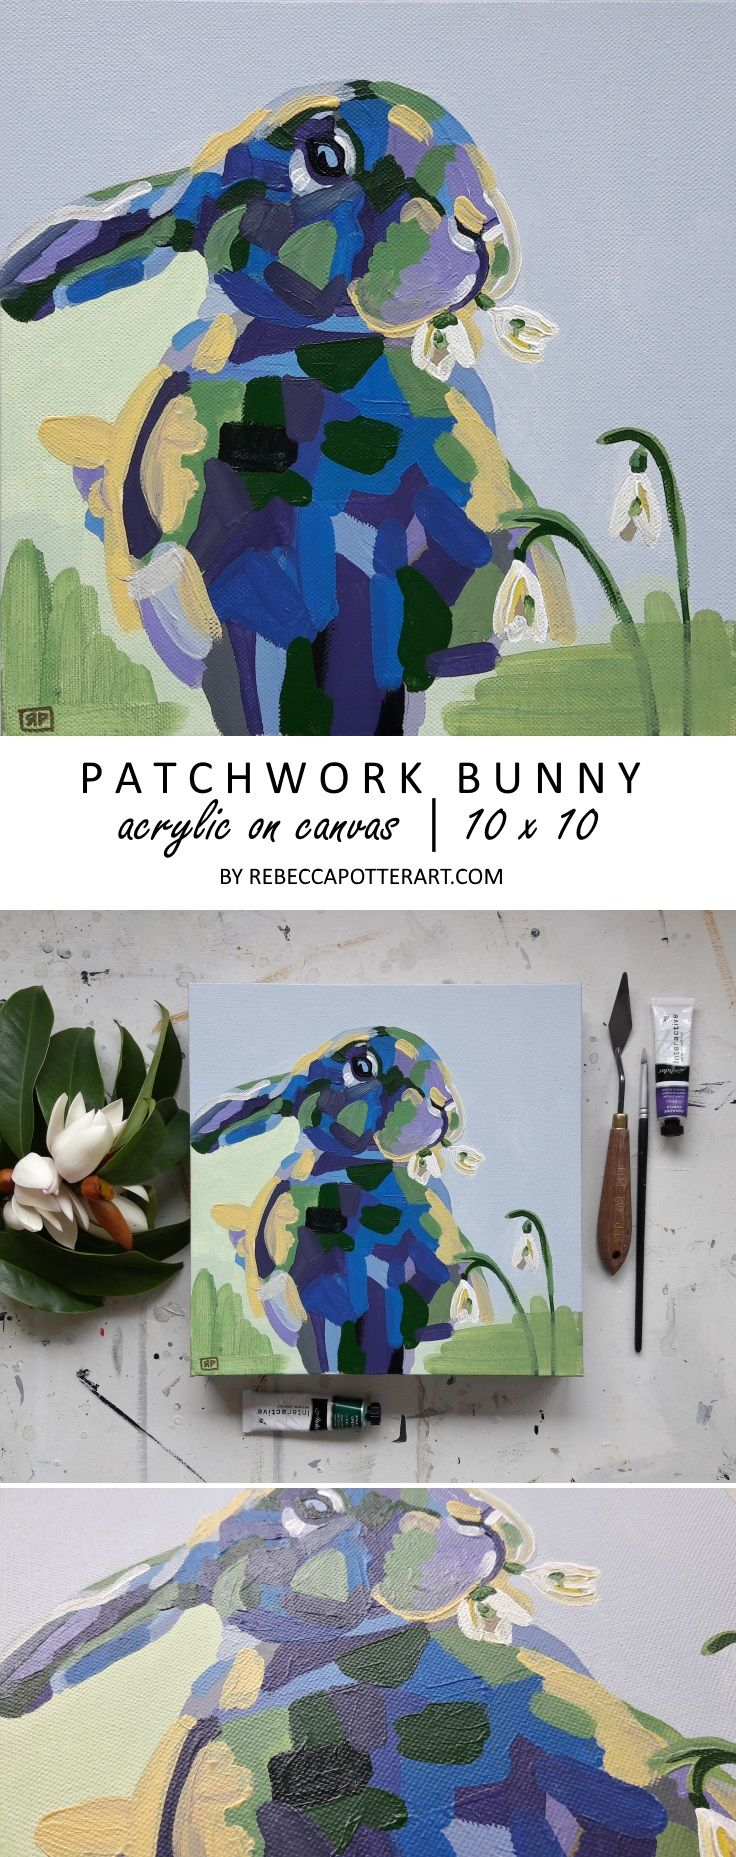 Patchwork Bunny. Acrylic on Canvas Painting 10 x 10 by Rebecca Potter. August 2017